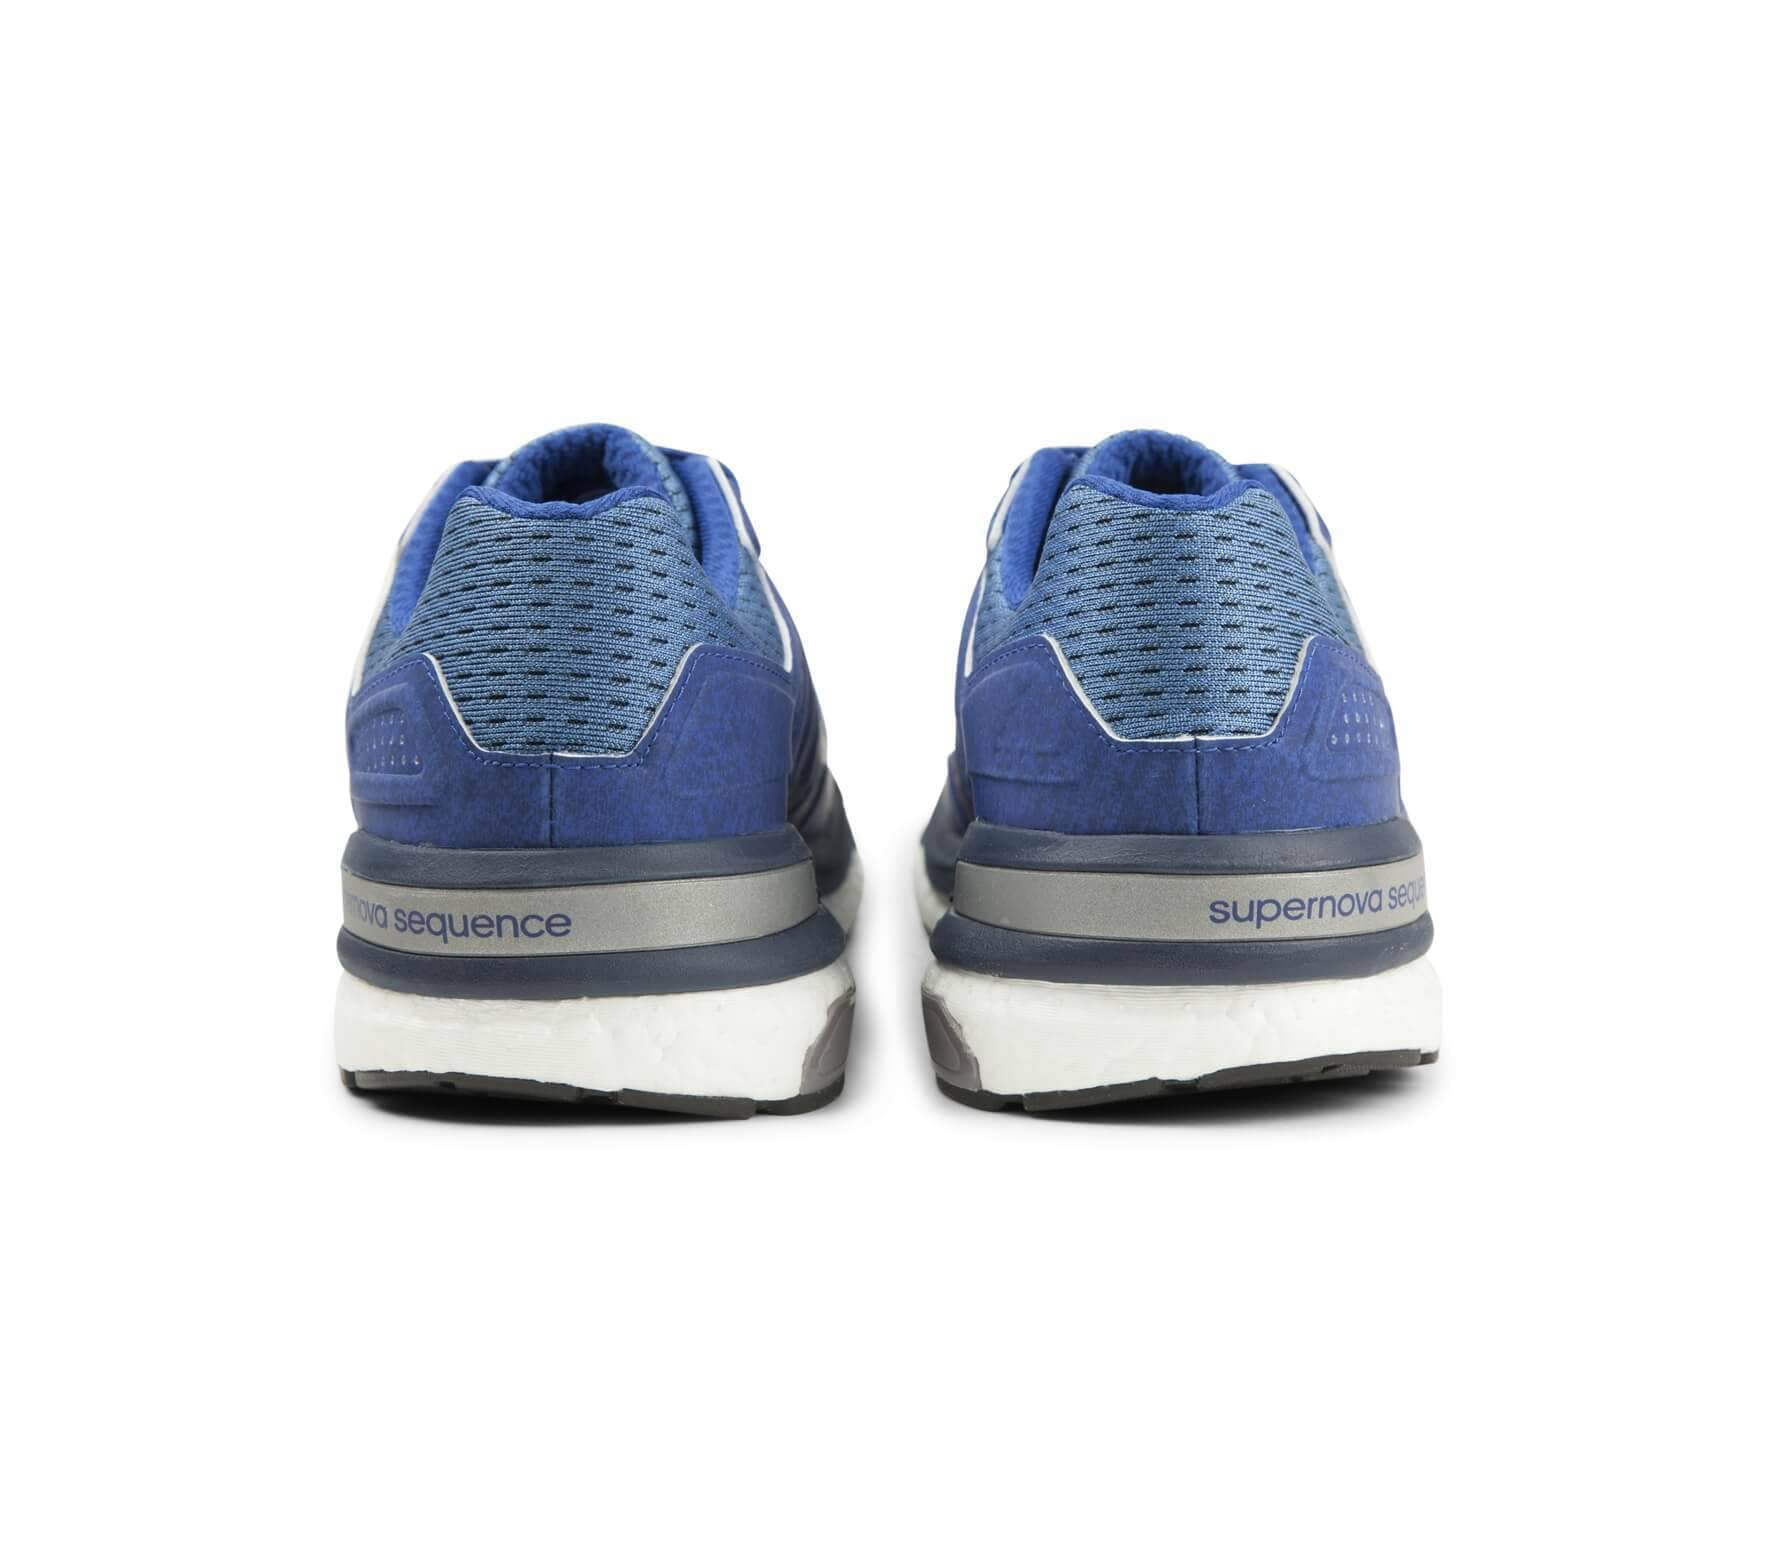 ADIDAS top Supernova Sequence BOOST stableframe blau REEBOK